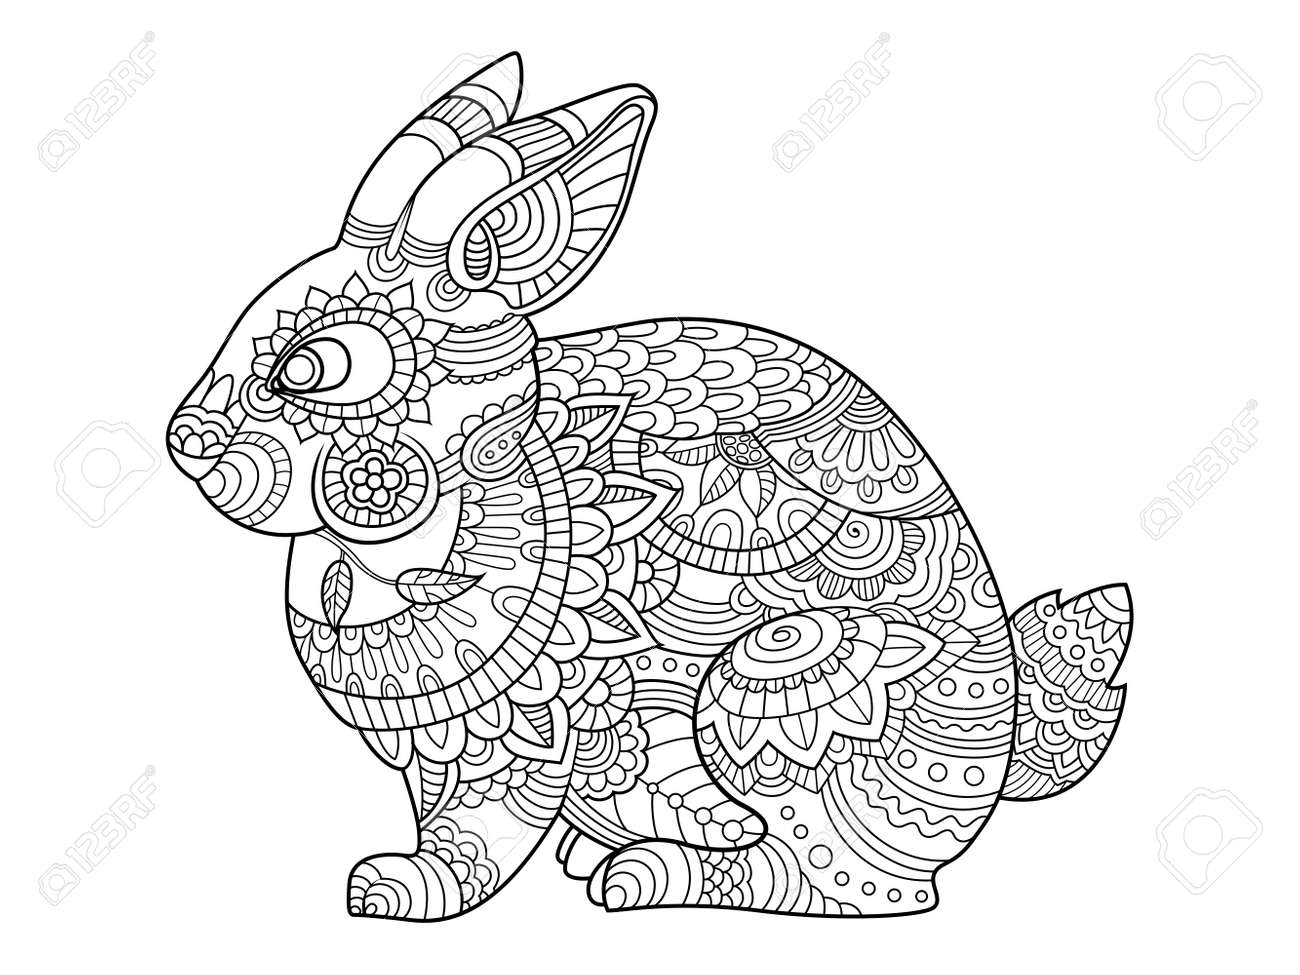 Rabbit Bunny Coloring Book For Adults Vector Illustration. Anti ...